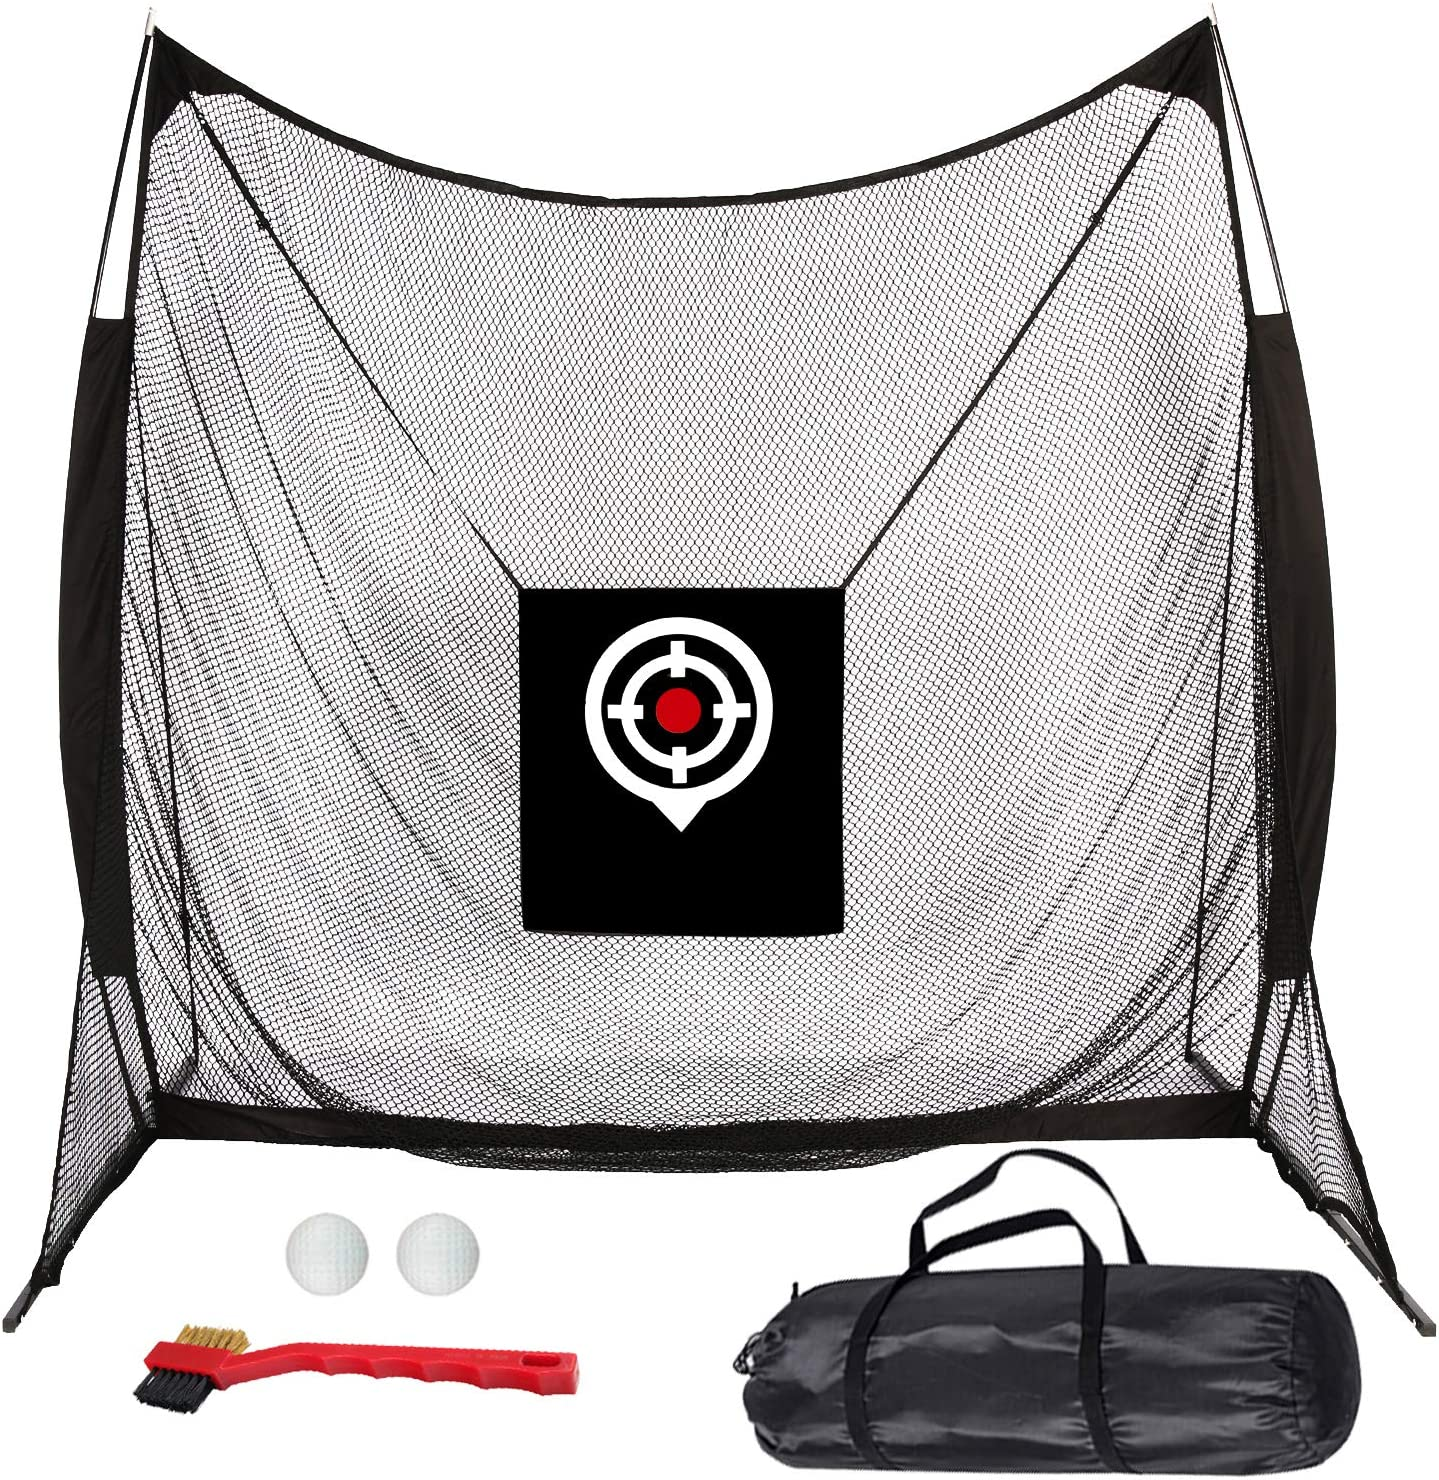 BRIGHT MOON Golf Net, Golf Hitting Net 8.2 X 8.2 Professional Golfing at Home Swing Training Aids Golf Practice Net for Backyard Driving Comes with Two Style Golf Targets : Sports & Outdoors